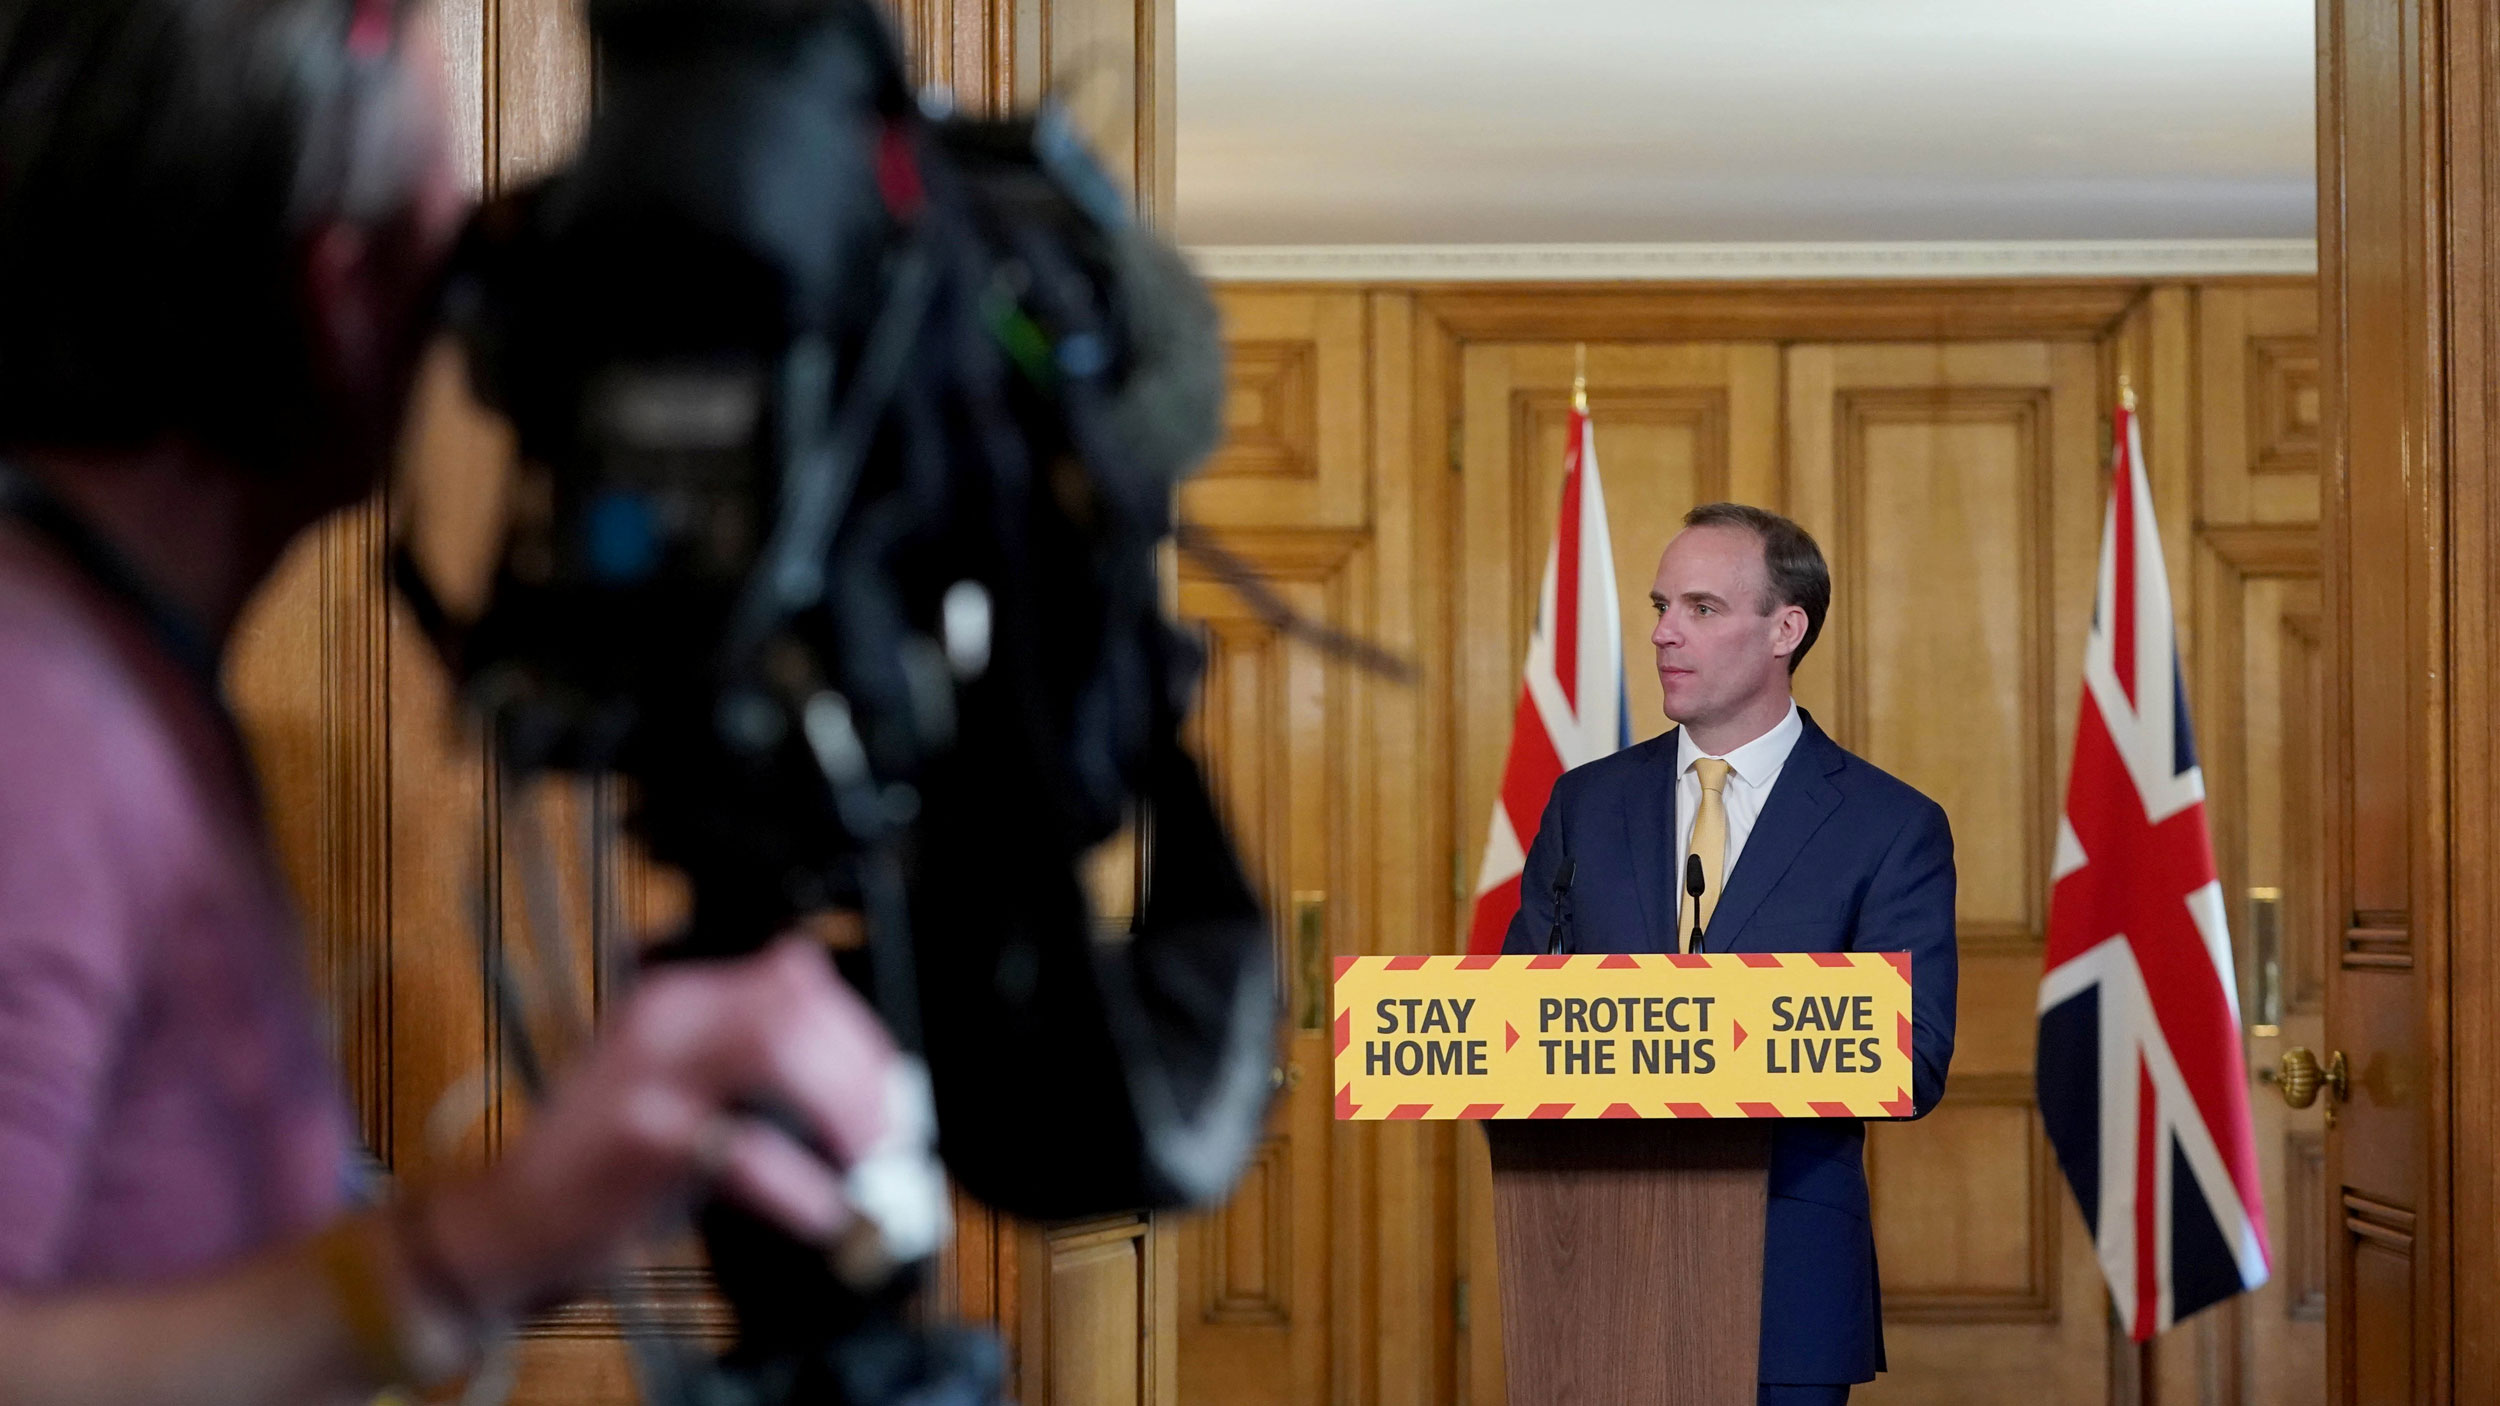 """Britain's Foreign Secretary Dominic Raab is shown standing behind a podium witth the words, """"Stay Home, Protect the NHS, Save Lives"""" printed on it."""